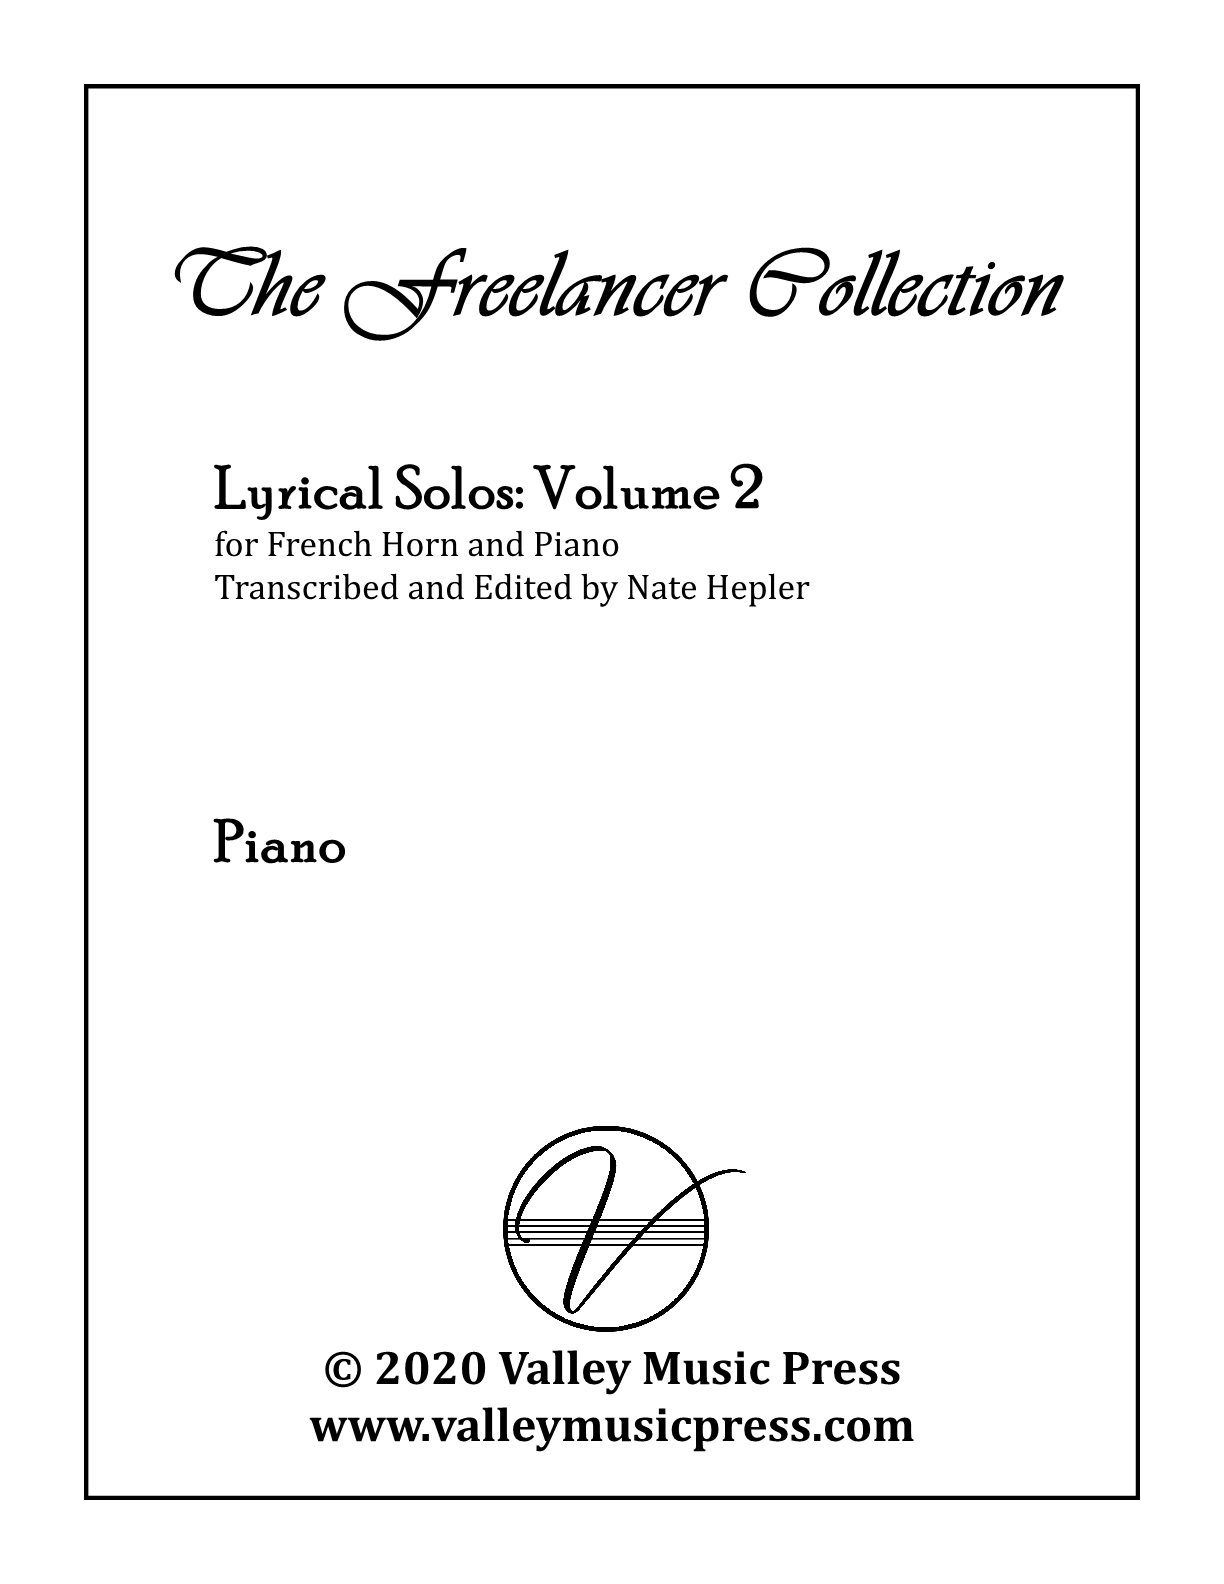 Hepler - Freelancer Collection Lyrical Solos Vol 2 (Hrn & Piano)